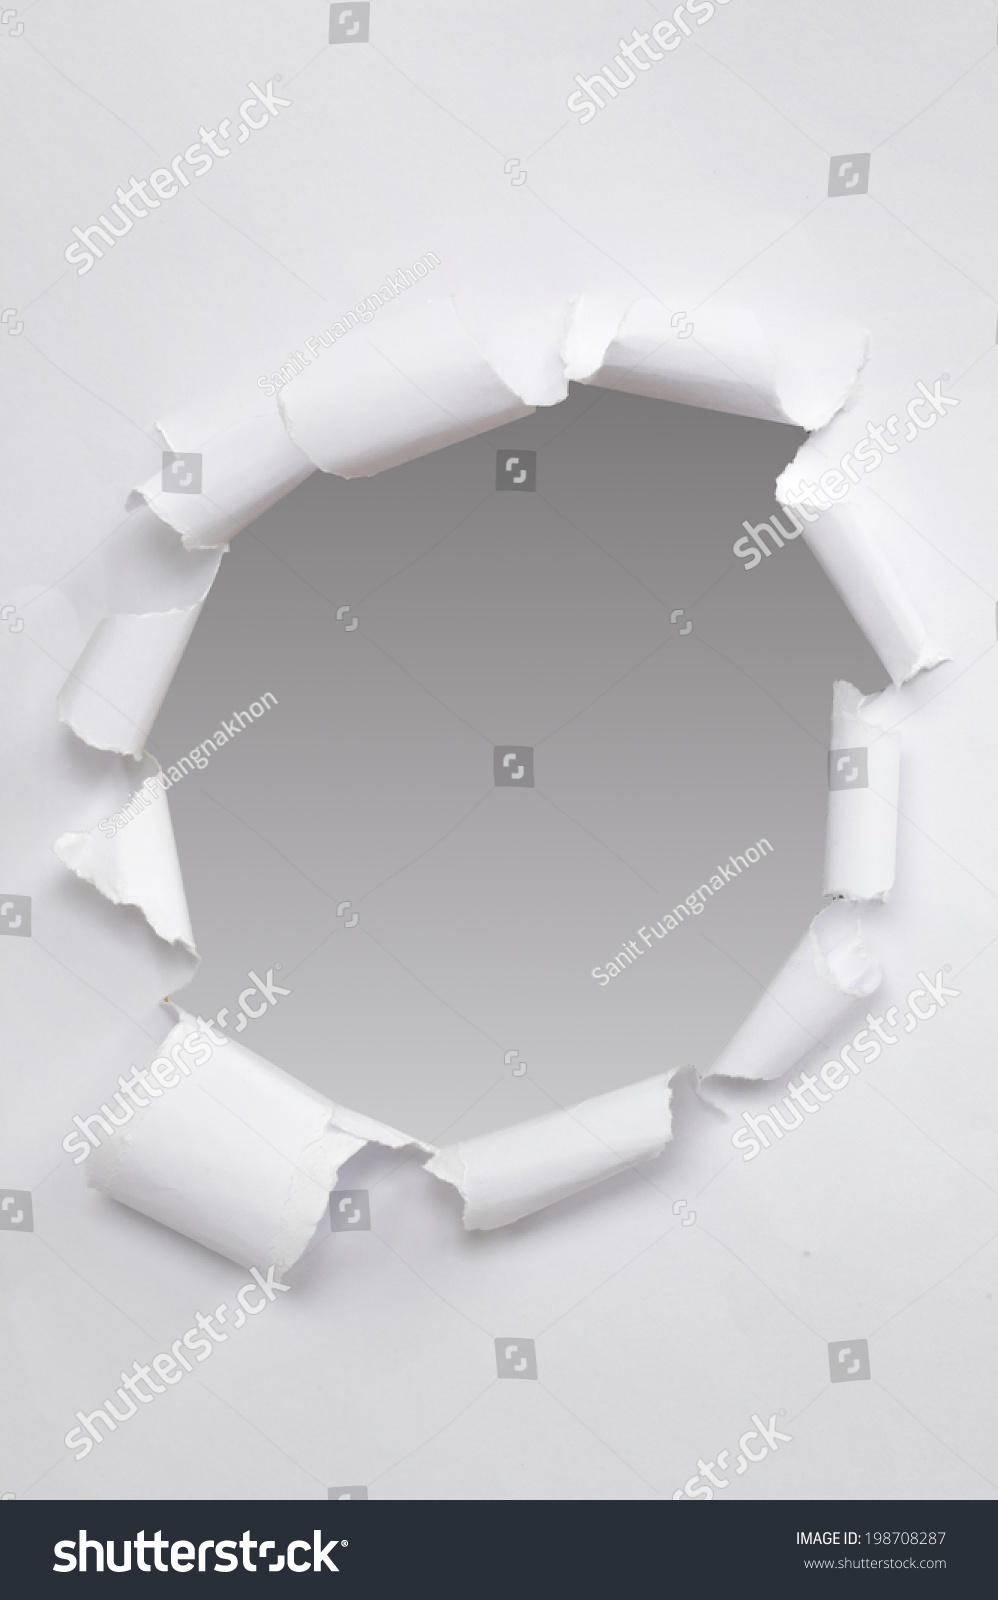 Black Hole On White Paper Stock Photo 198708287 - Shutterstock